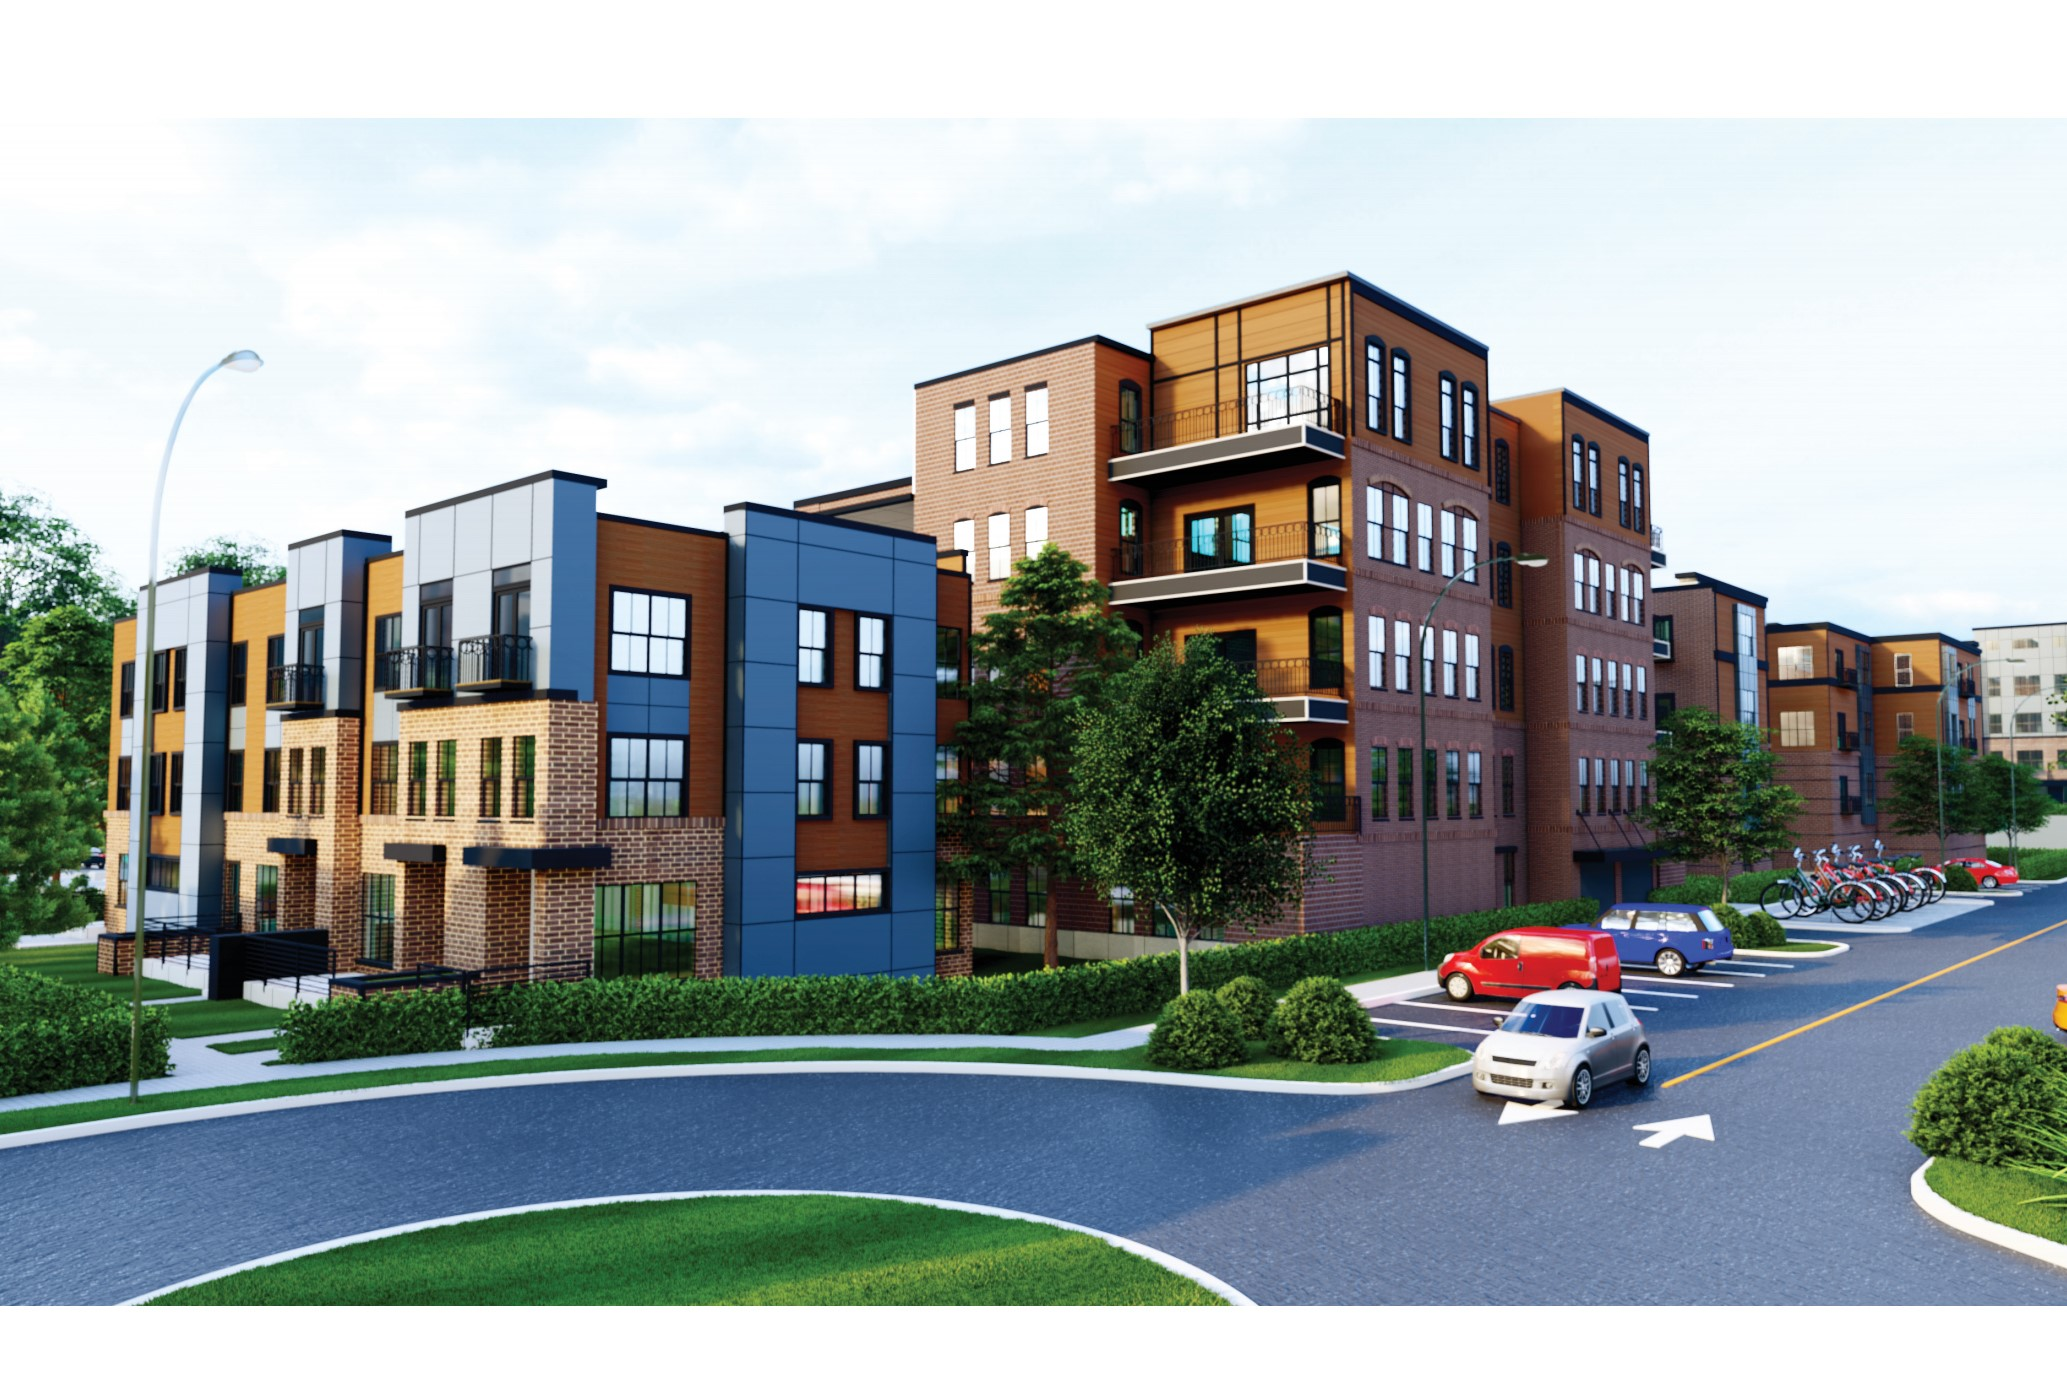 A drawing of what the proposed housing development on West Hillside could look like.